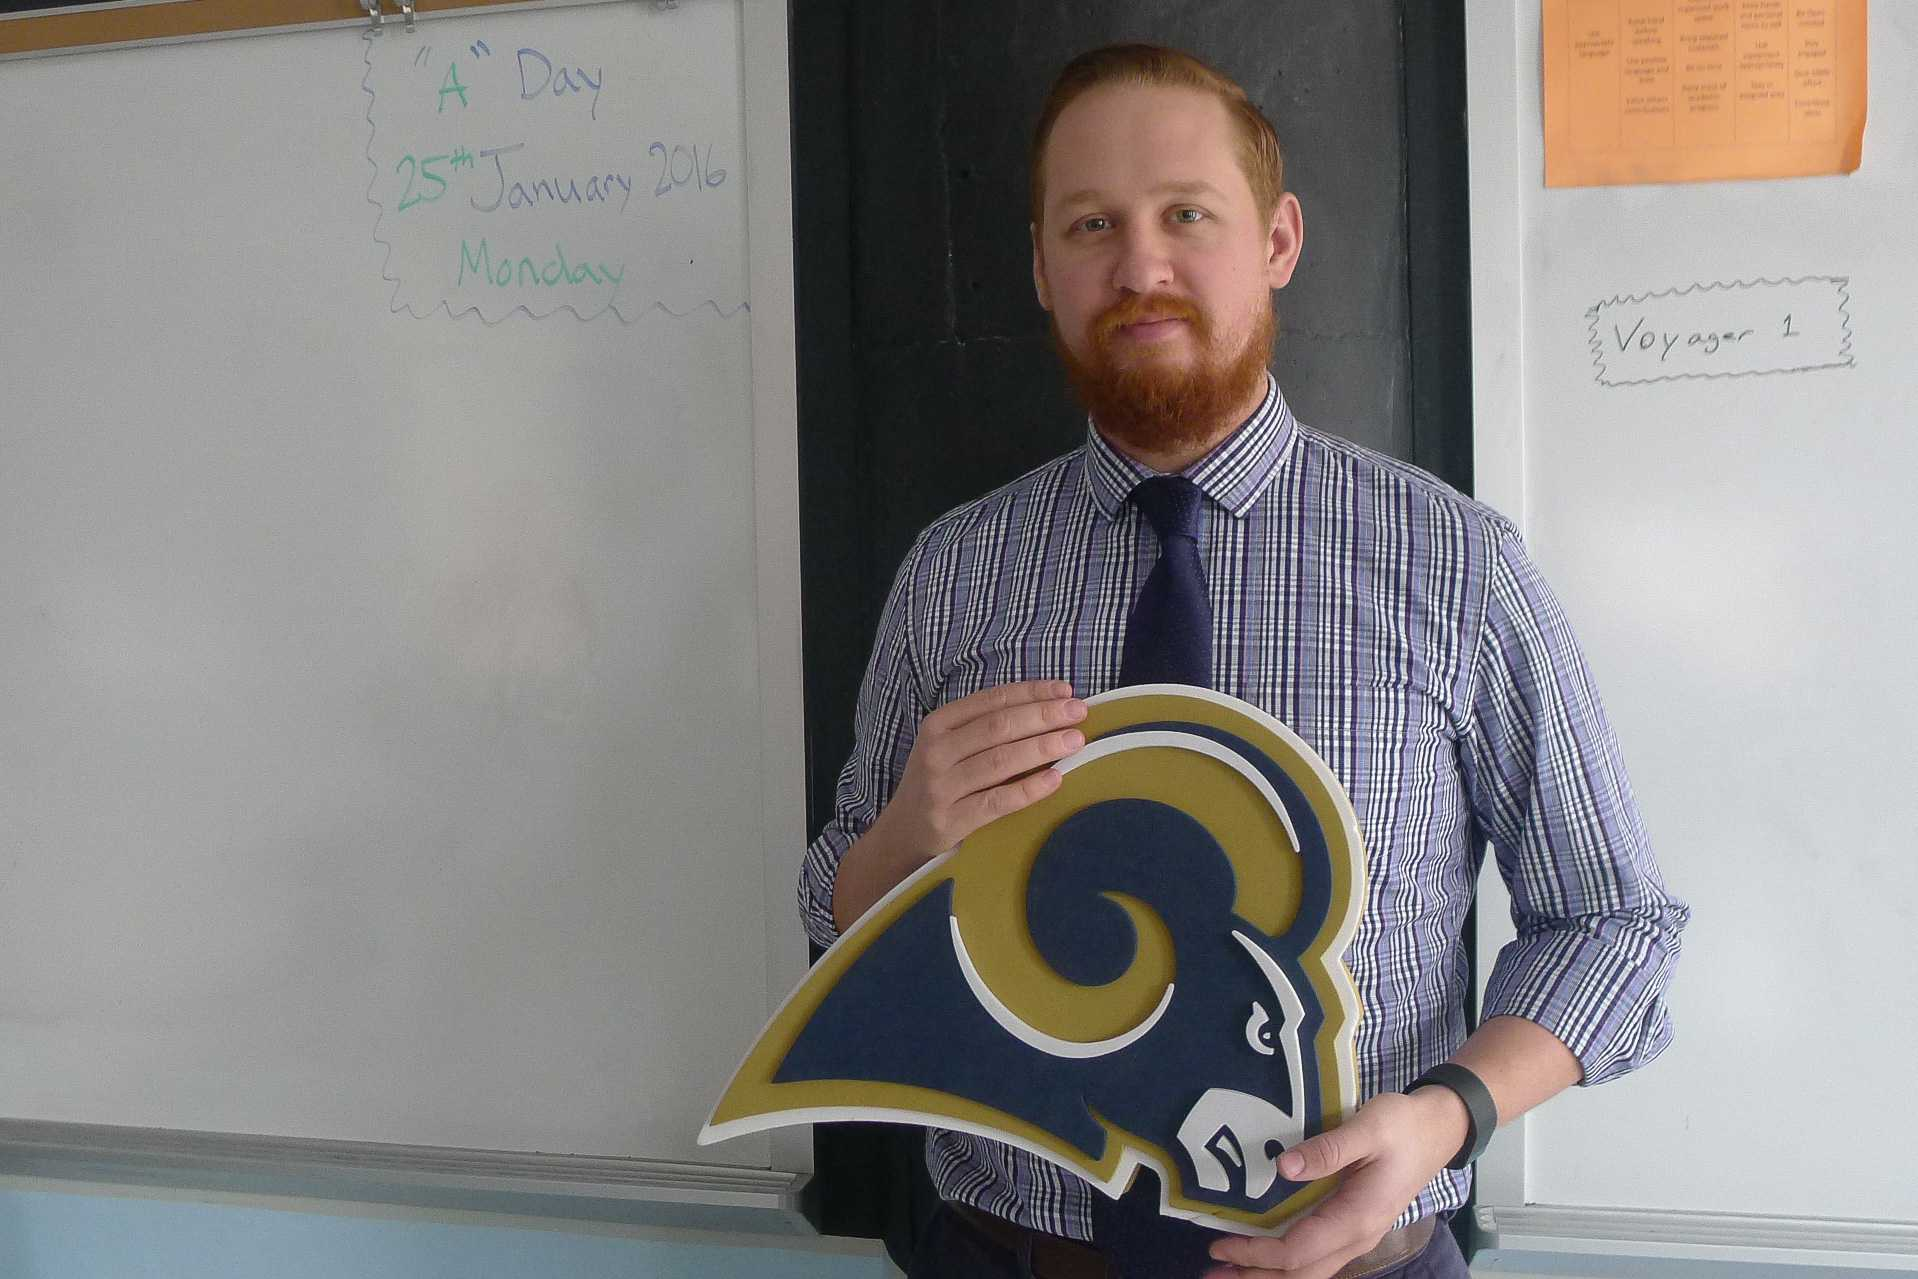 Michael Mancuso, Algebra 1B and 2 instructor, holds Rams' logo in hands. Mancuso tells about his 25 years of experience in St. Louis, and how he is somewhat saddened about the transfer of the Rams.